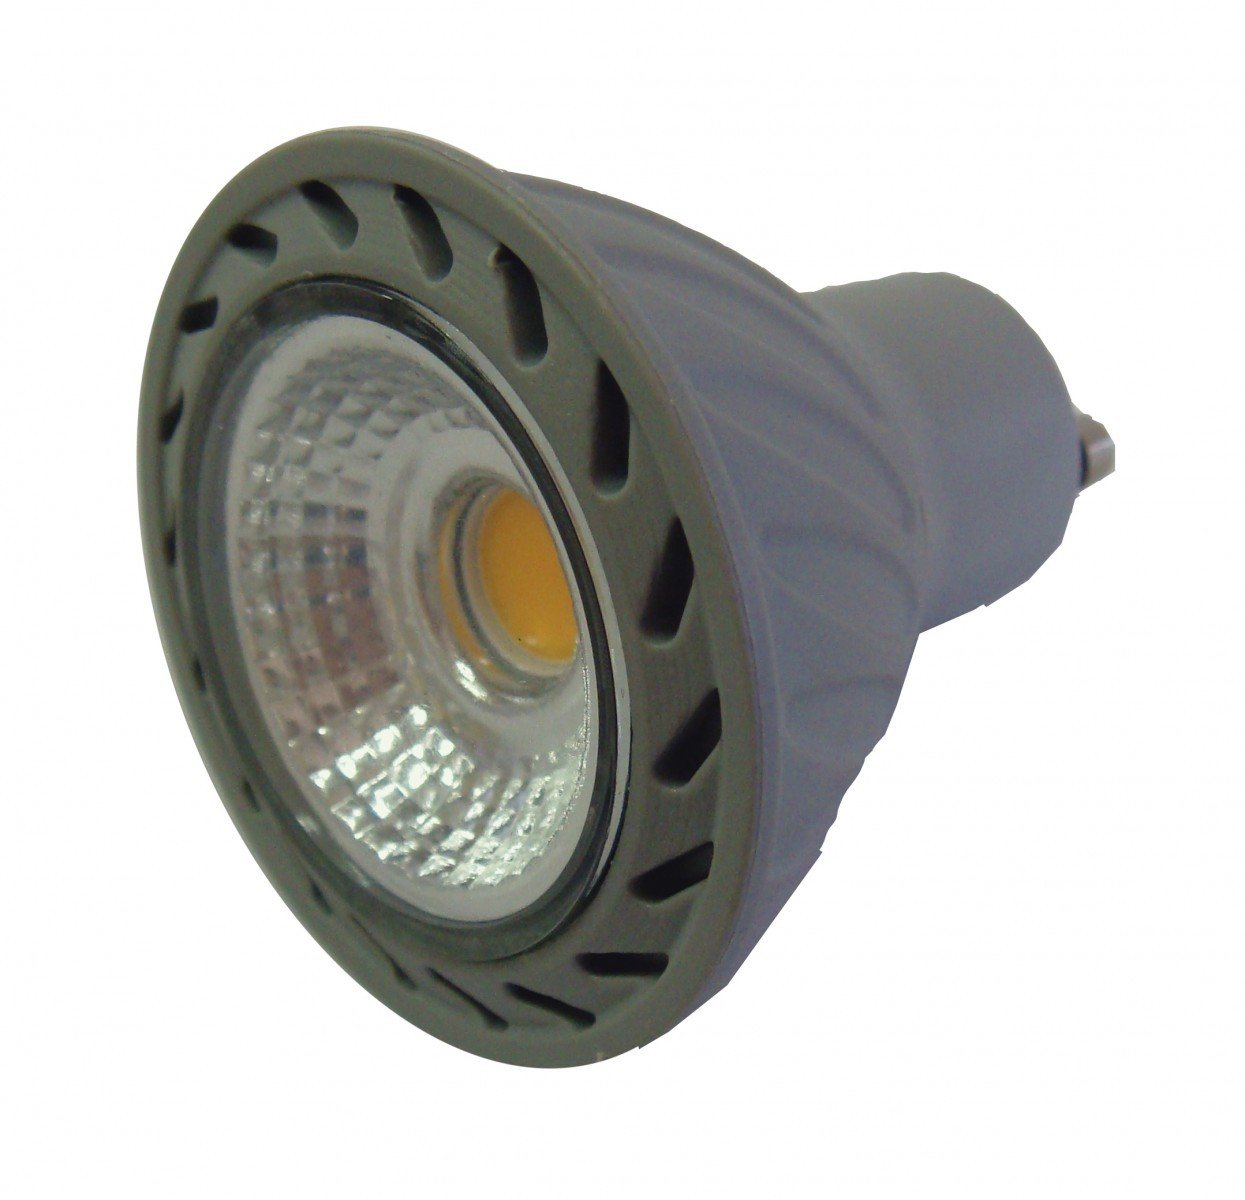 Portalamparas Led Gu10 Lighted Bombilla Gu10 Led Cob 7w 60º Bombillas Gu10 Led